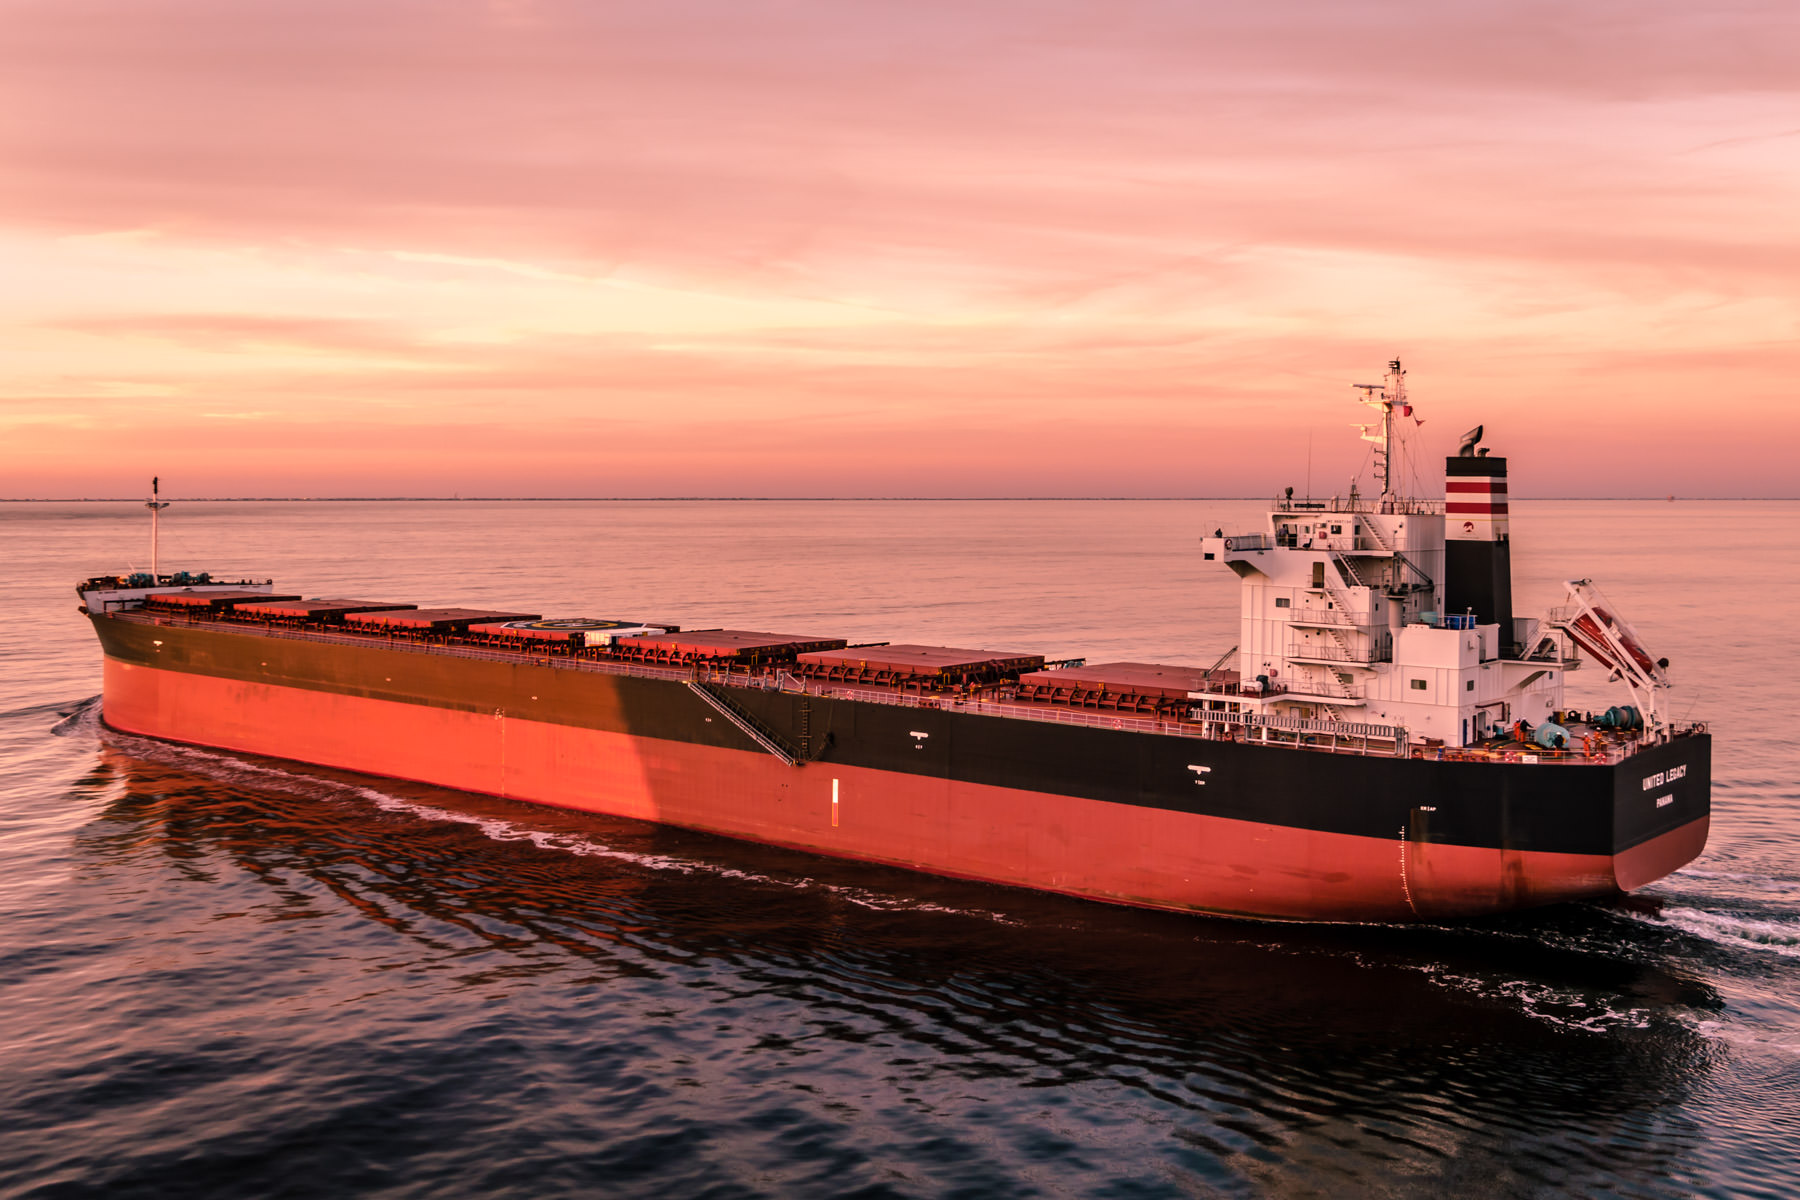 The bulk carrier United Legacy transits Bolivar Roads just off the coast of Galveston, Texas, as the sun sets on the Gulf of Mexico.